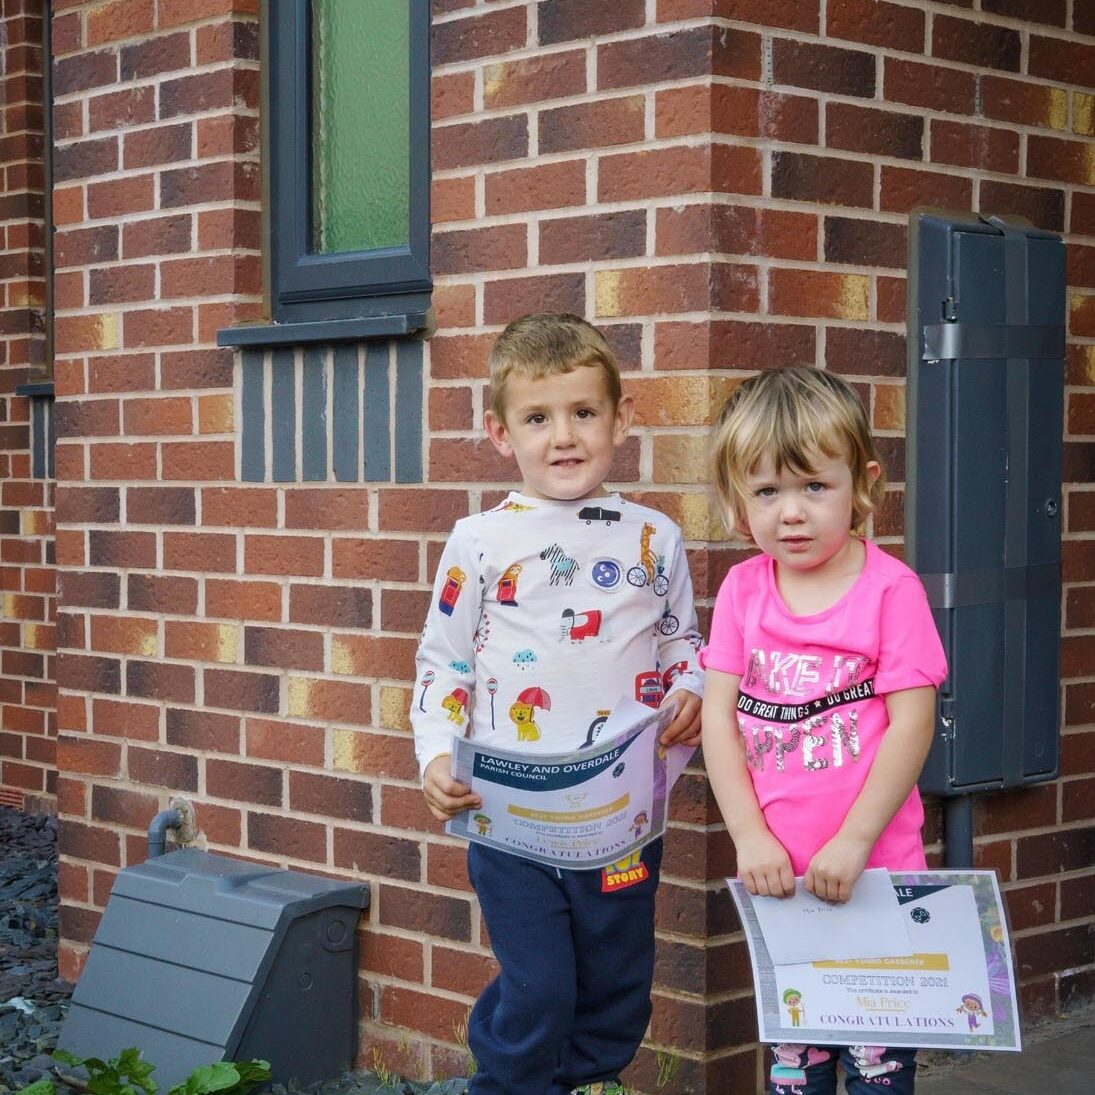 Two children standing outside of a house, with one of them holding a certificate.